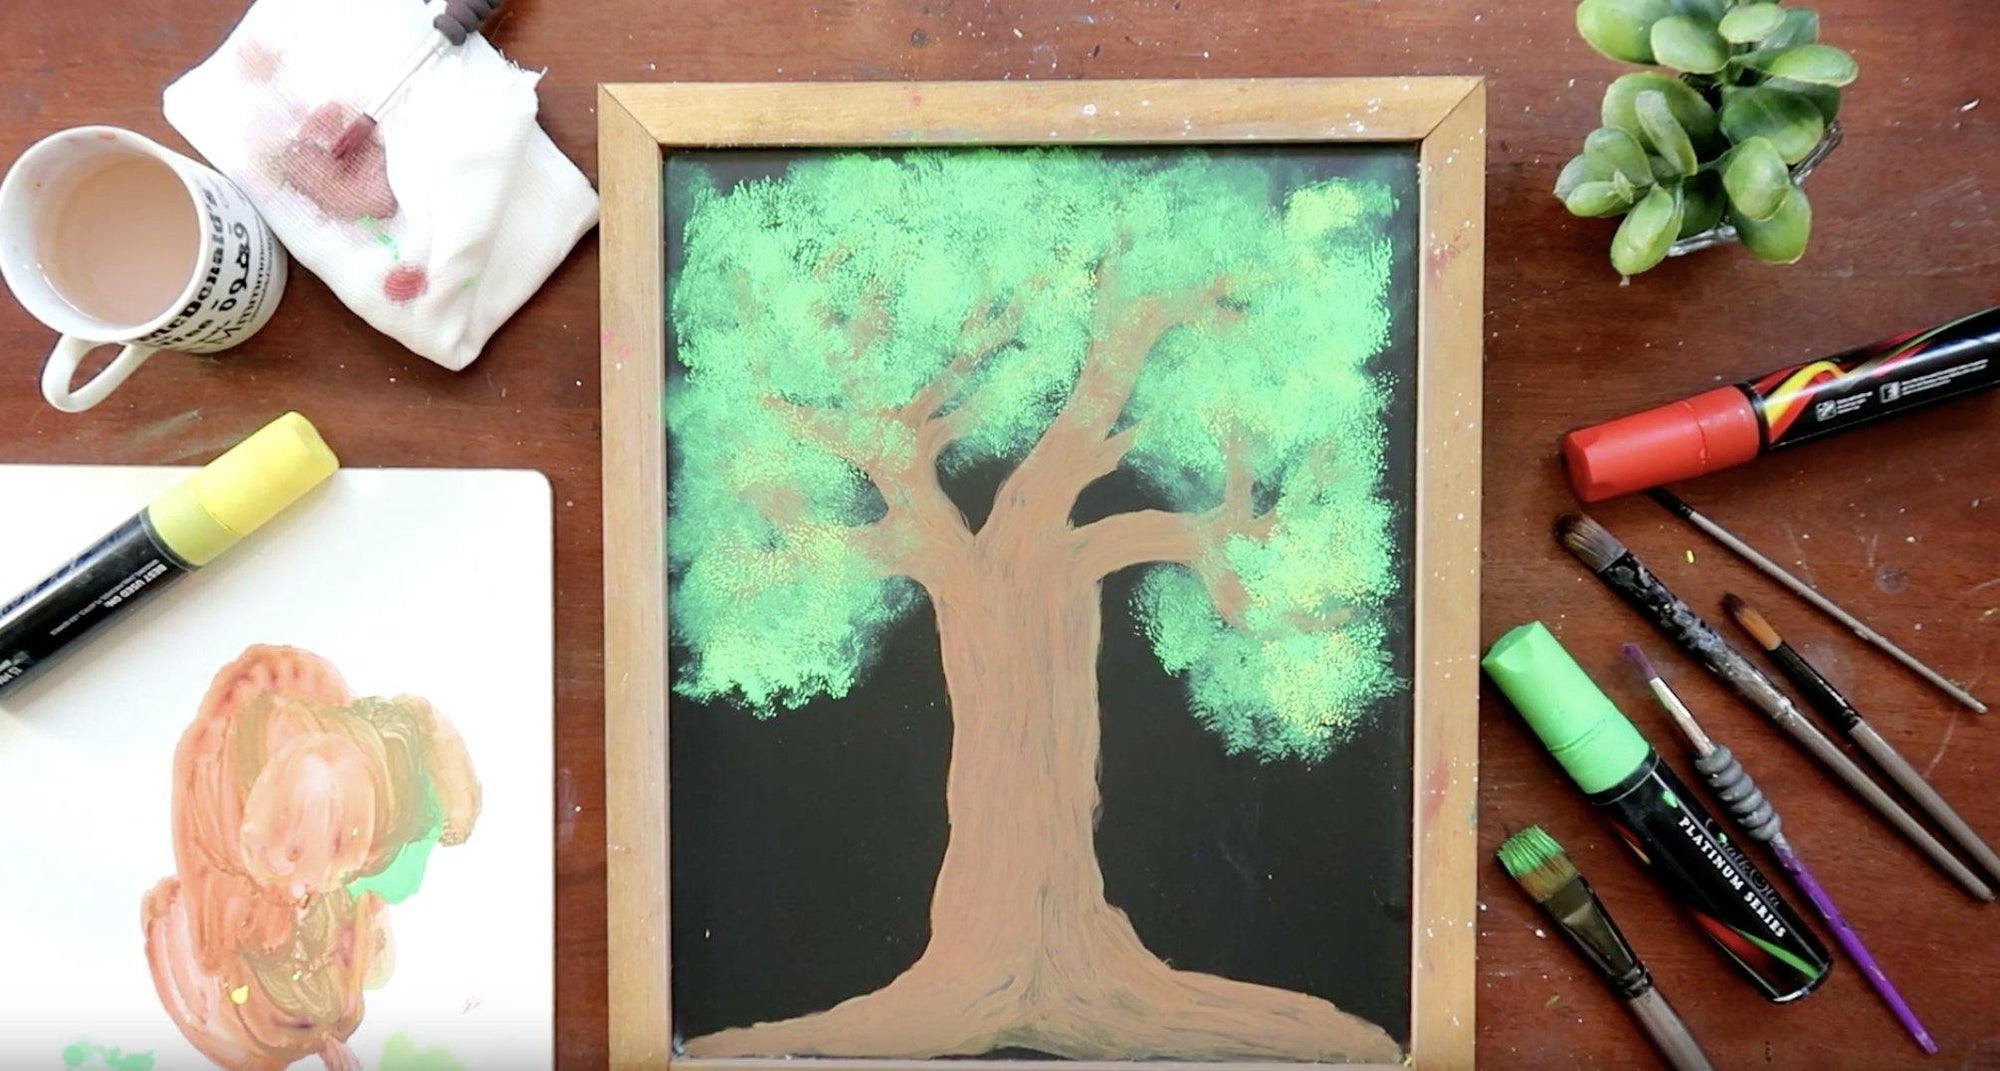 How To Paint With Chalk Markers [DIY Tutorial] | Chalkola Art Supply